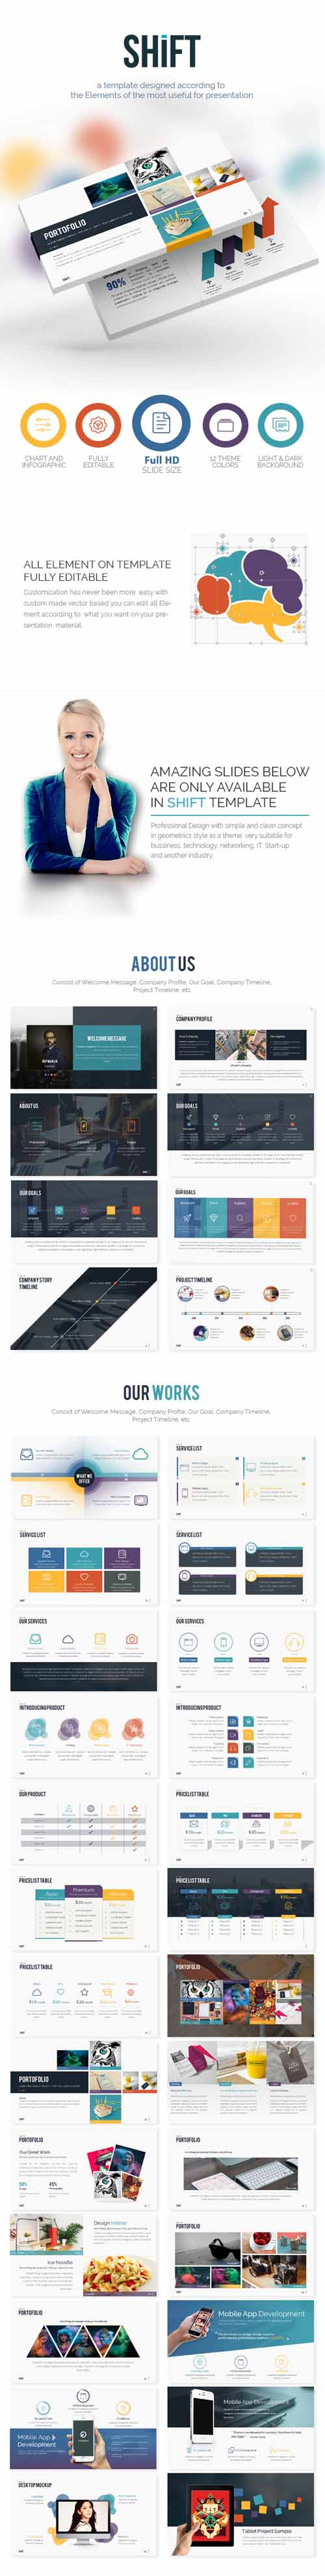 SHIFT Keynote - Multipurpose Keynote Template 14089897